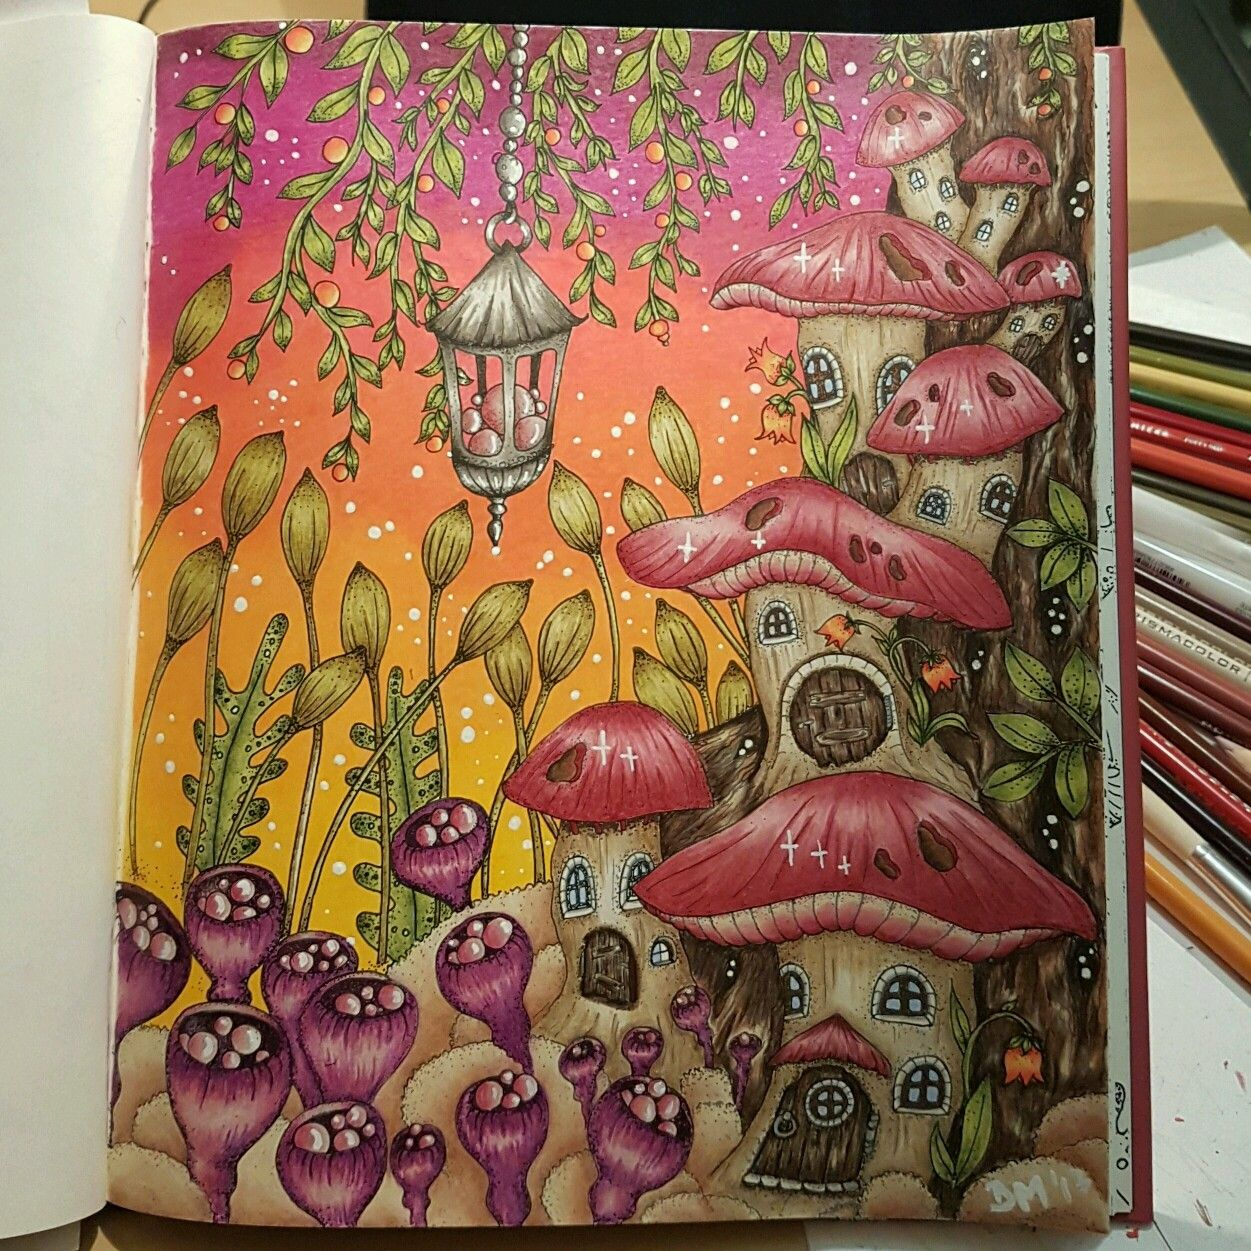 Magical Delights Coloring Book By Klara Markova Colored Me Following Julies Passion For